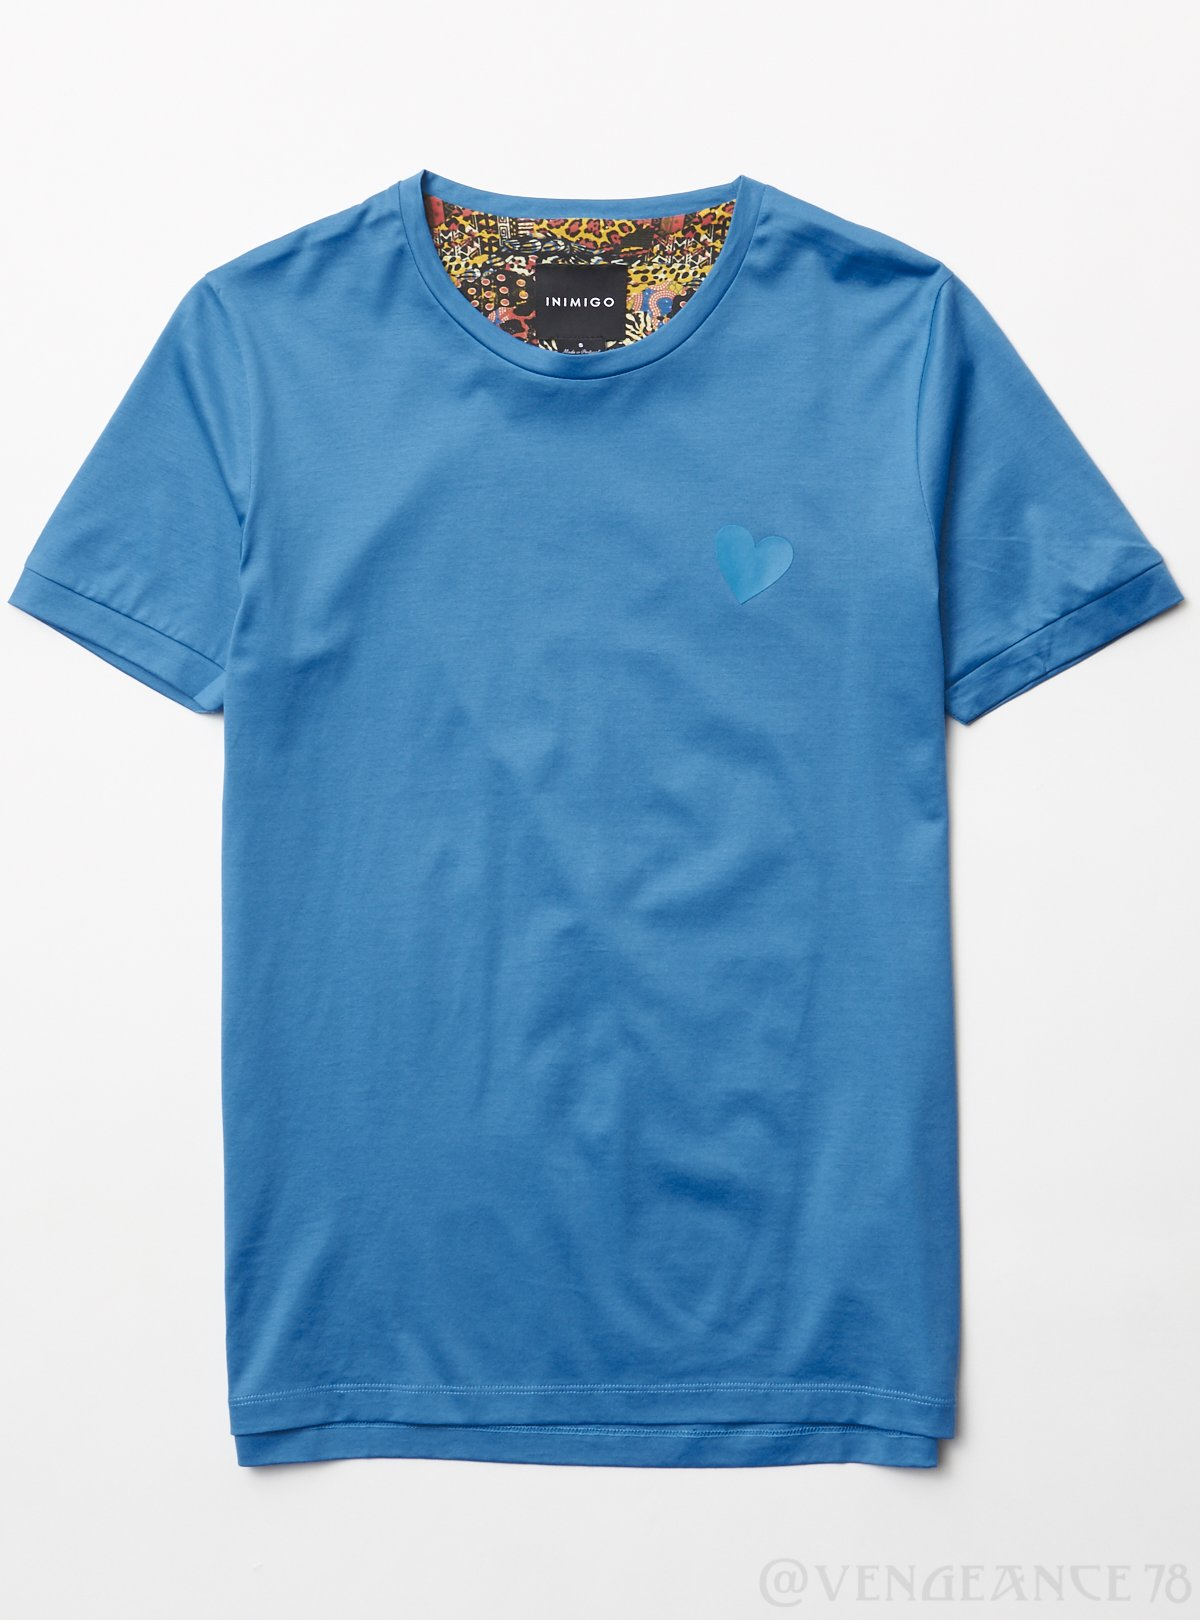 Inimigo T-Shirt - Heart - Blue - ITS4102